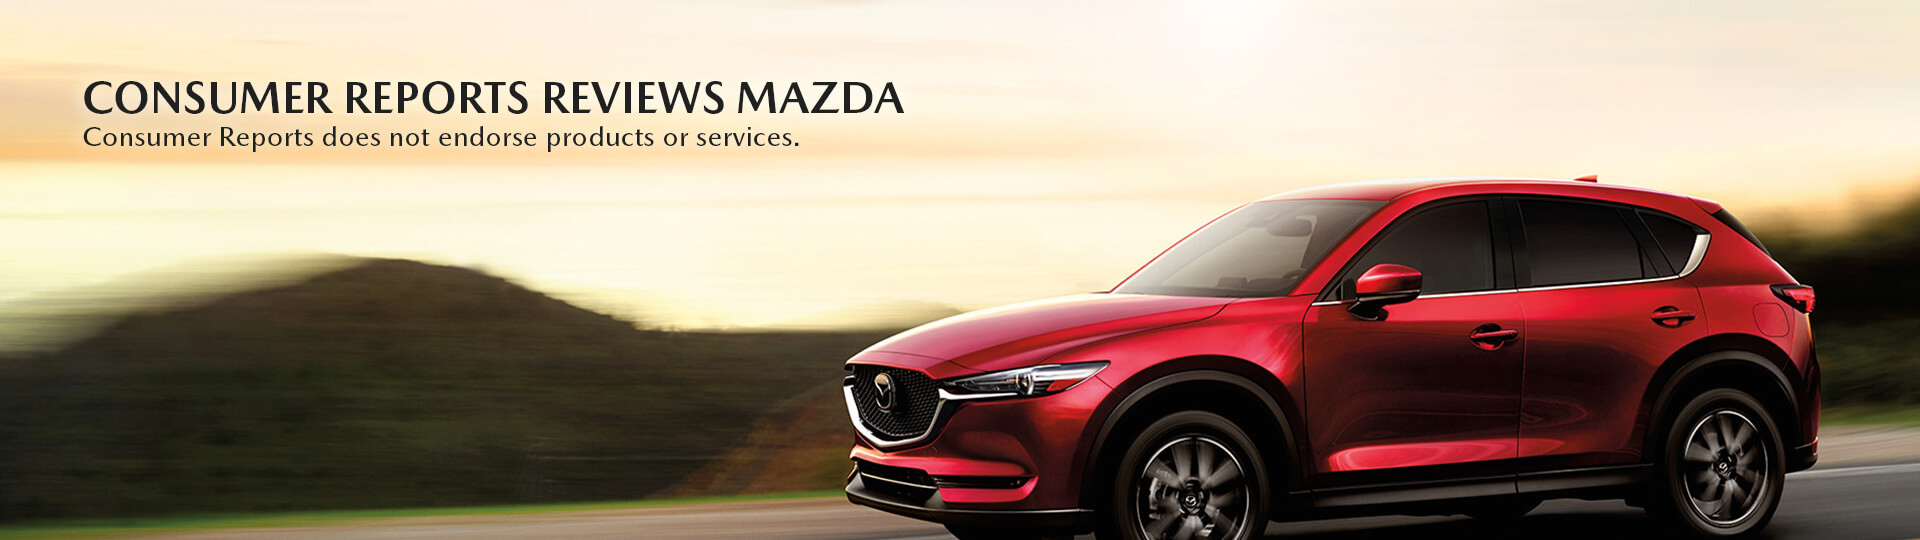 Consumer Reports Review Mazda.